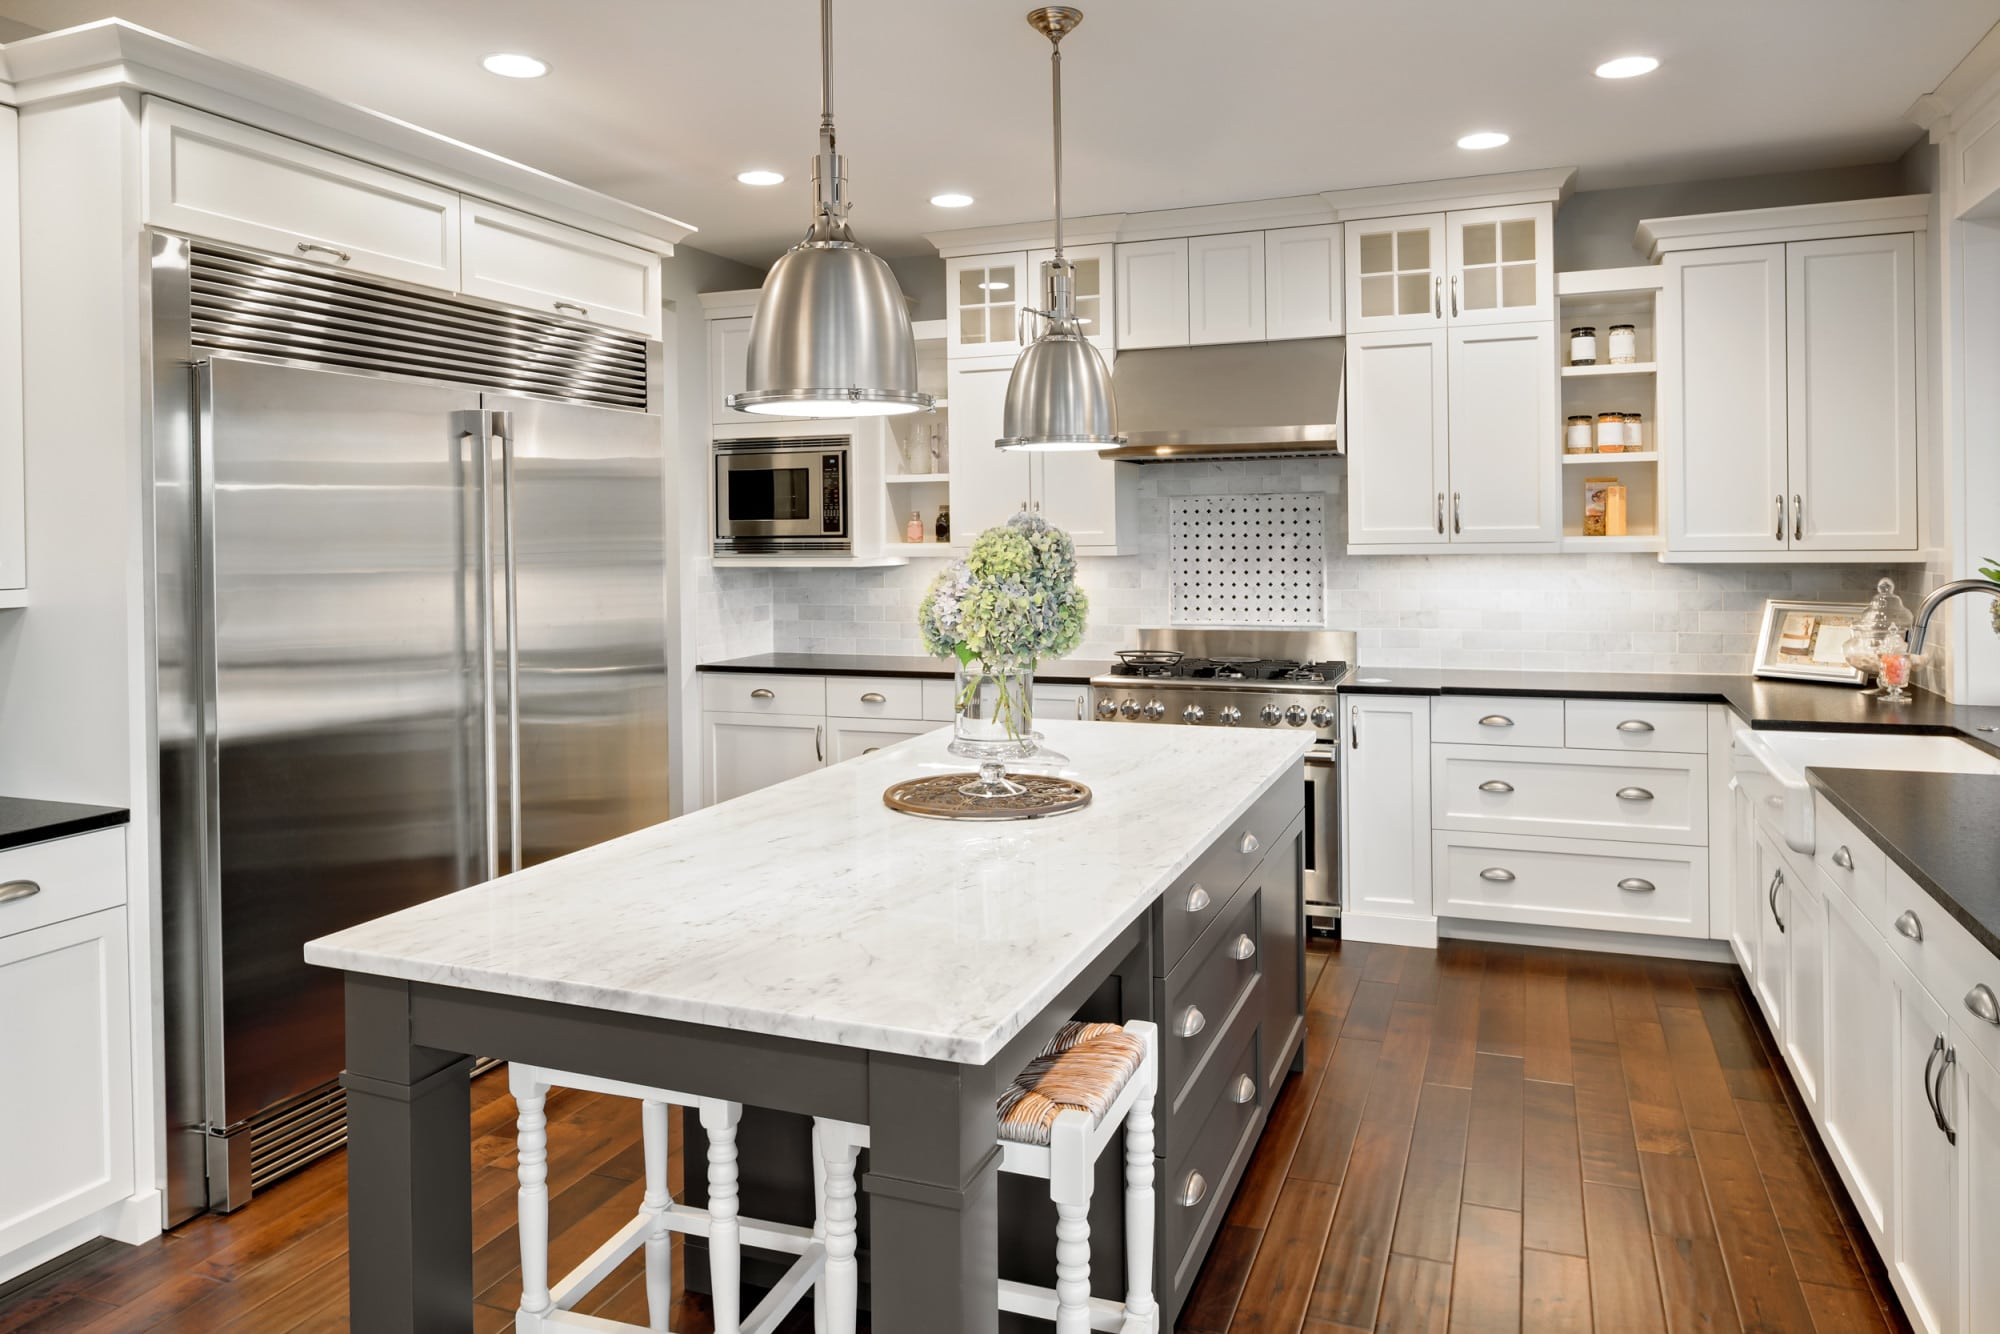 12 Signs You Need to Upgrade Your Kitchen Cabinets